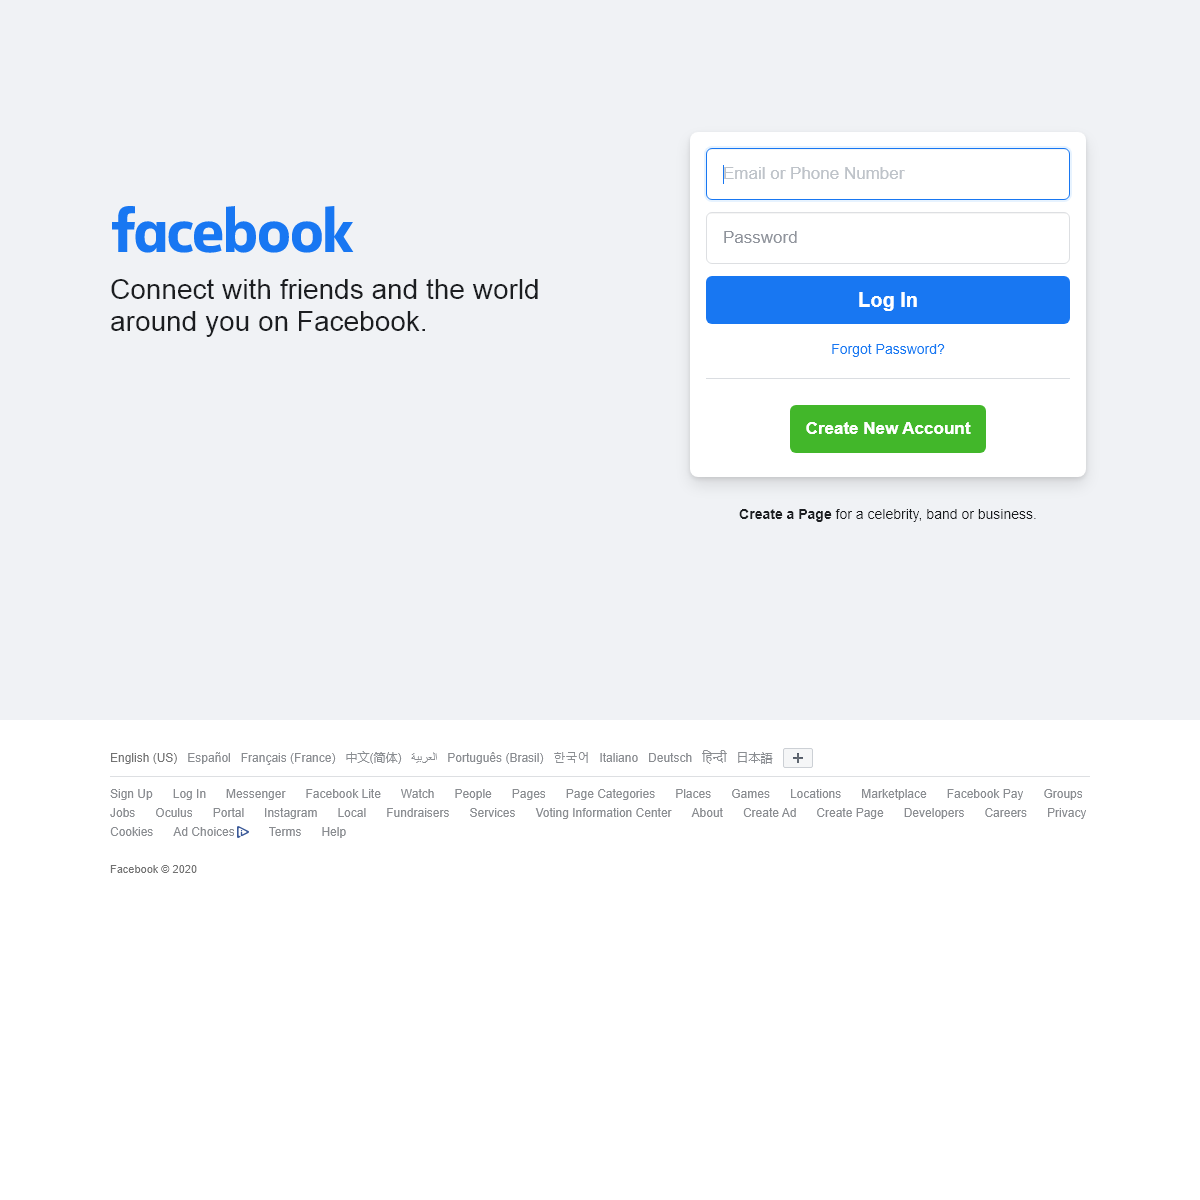 Facebook - Log In or Sign Up